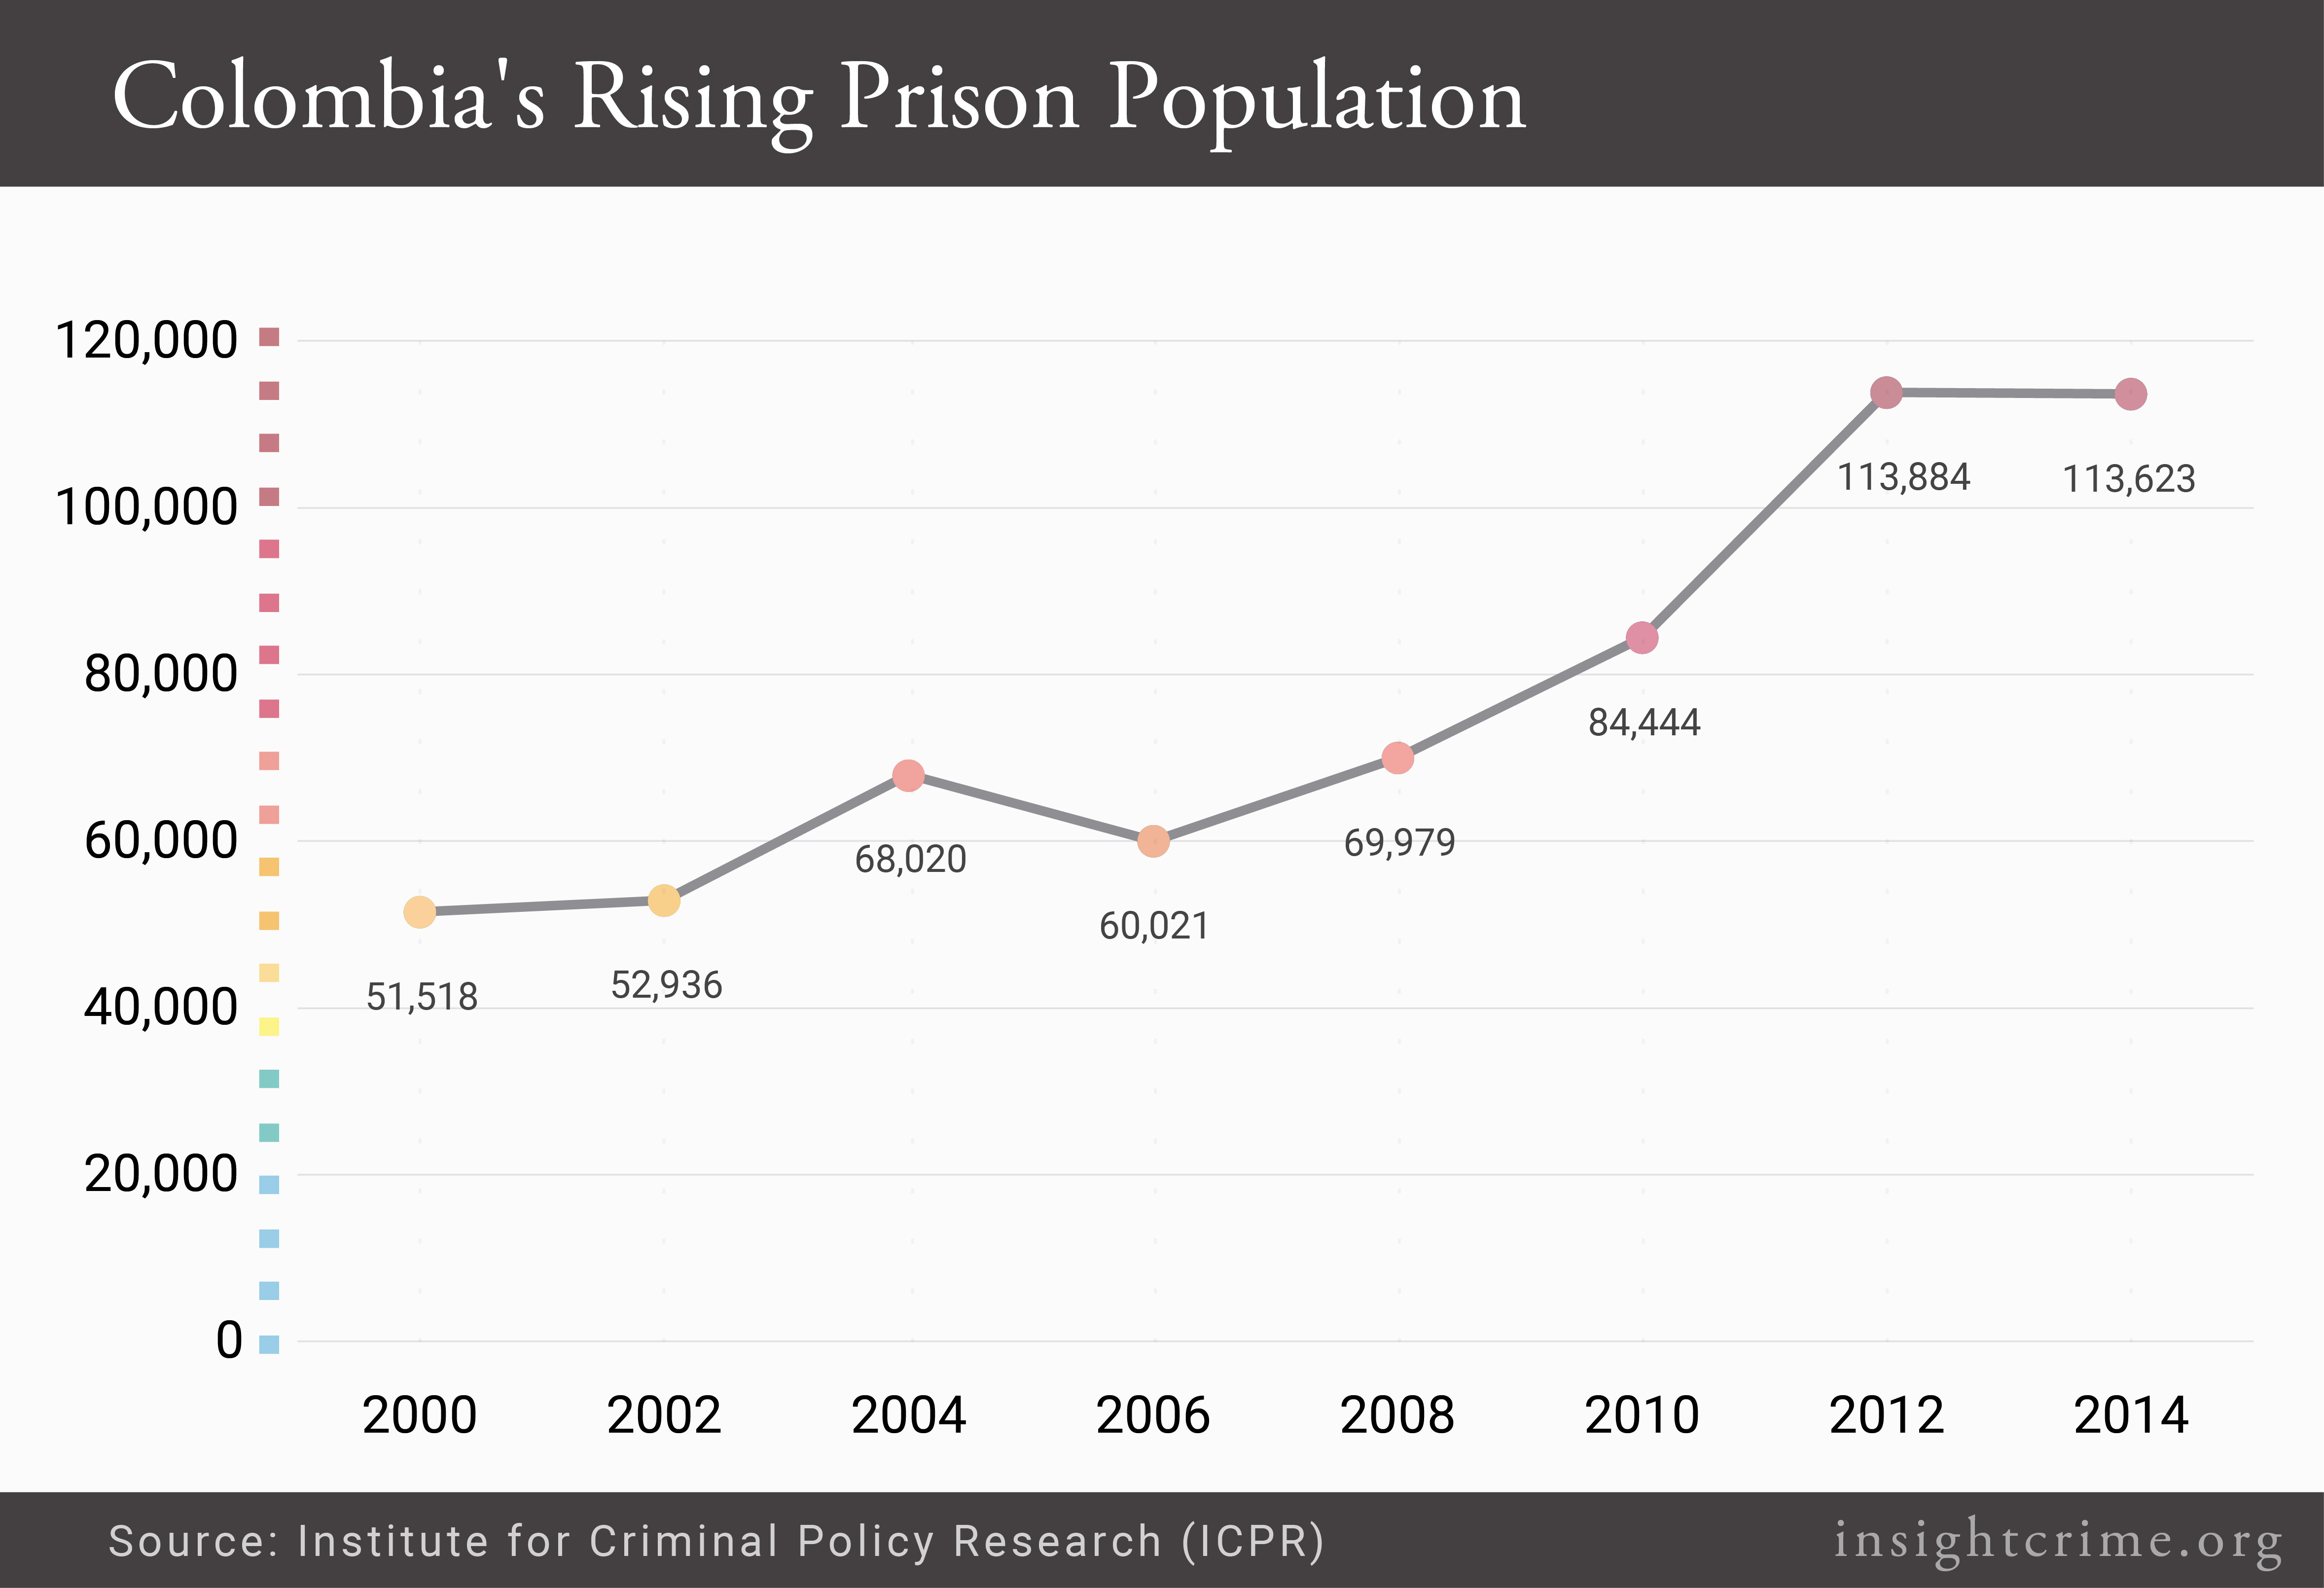 colombia-rising-prison-population